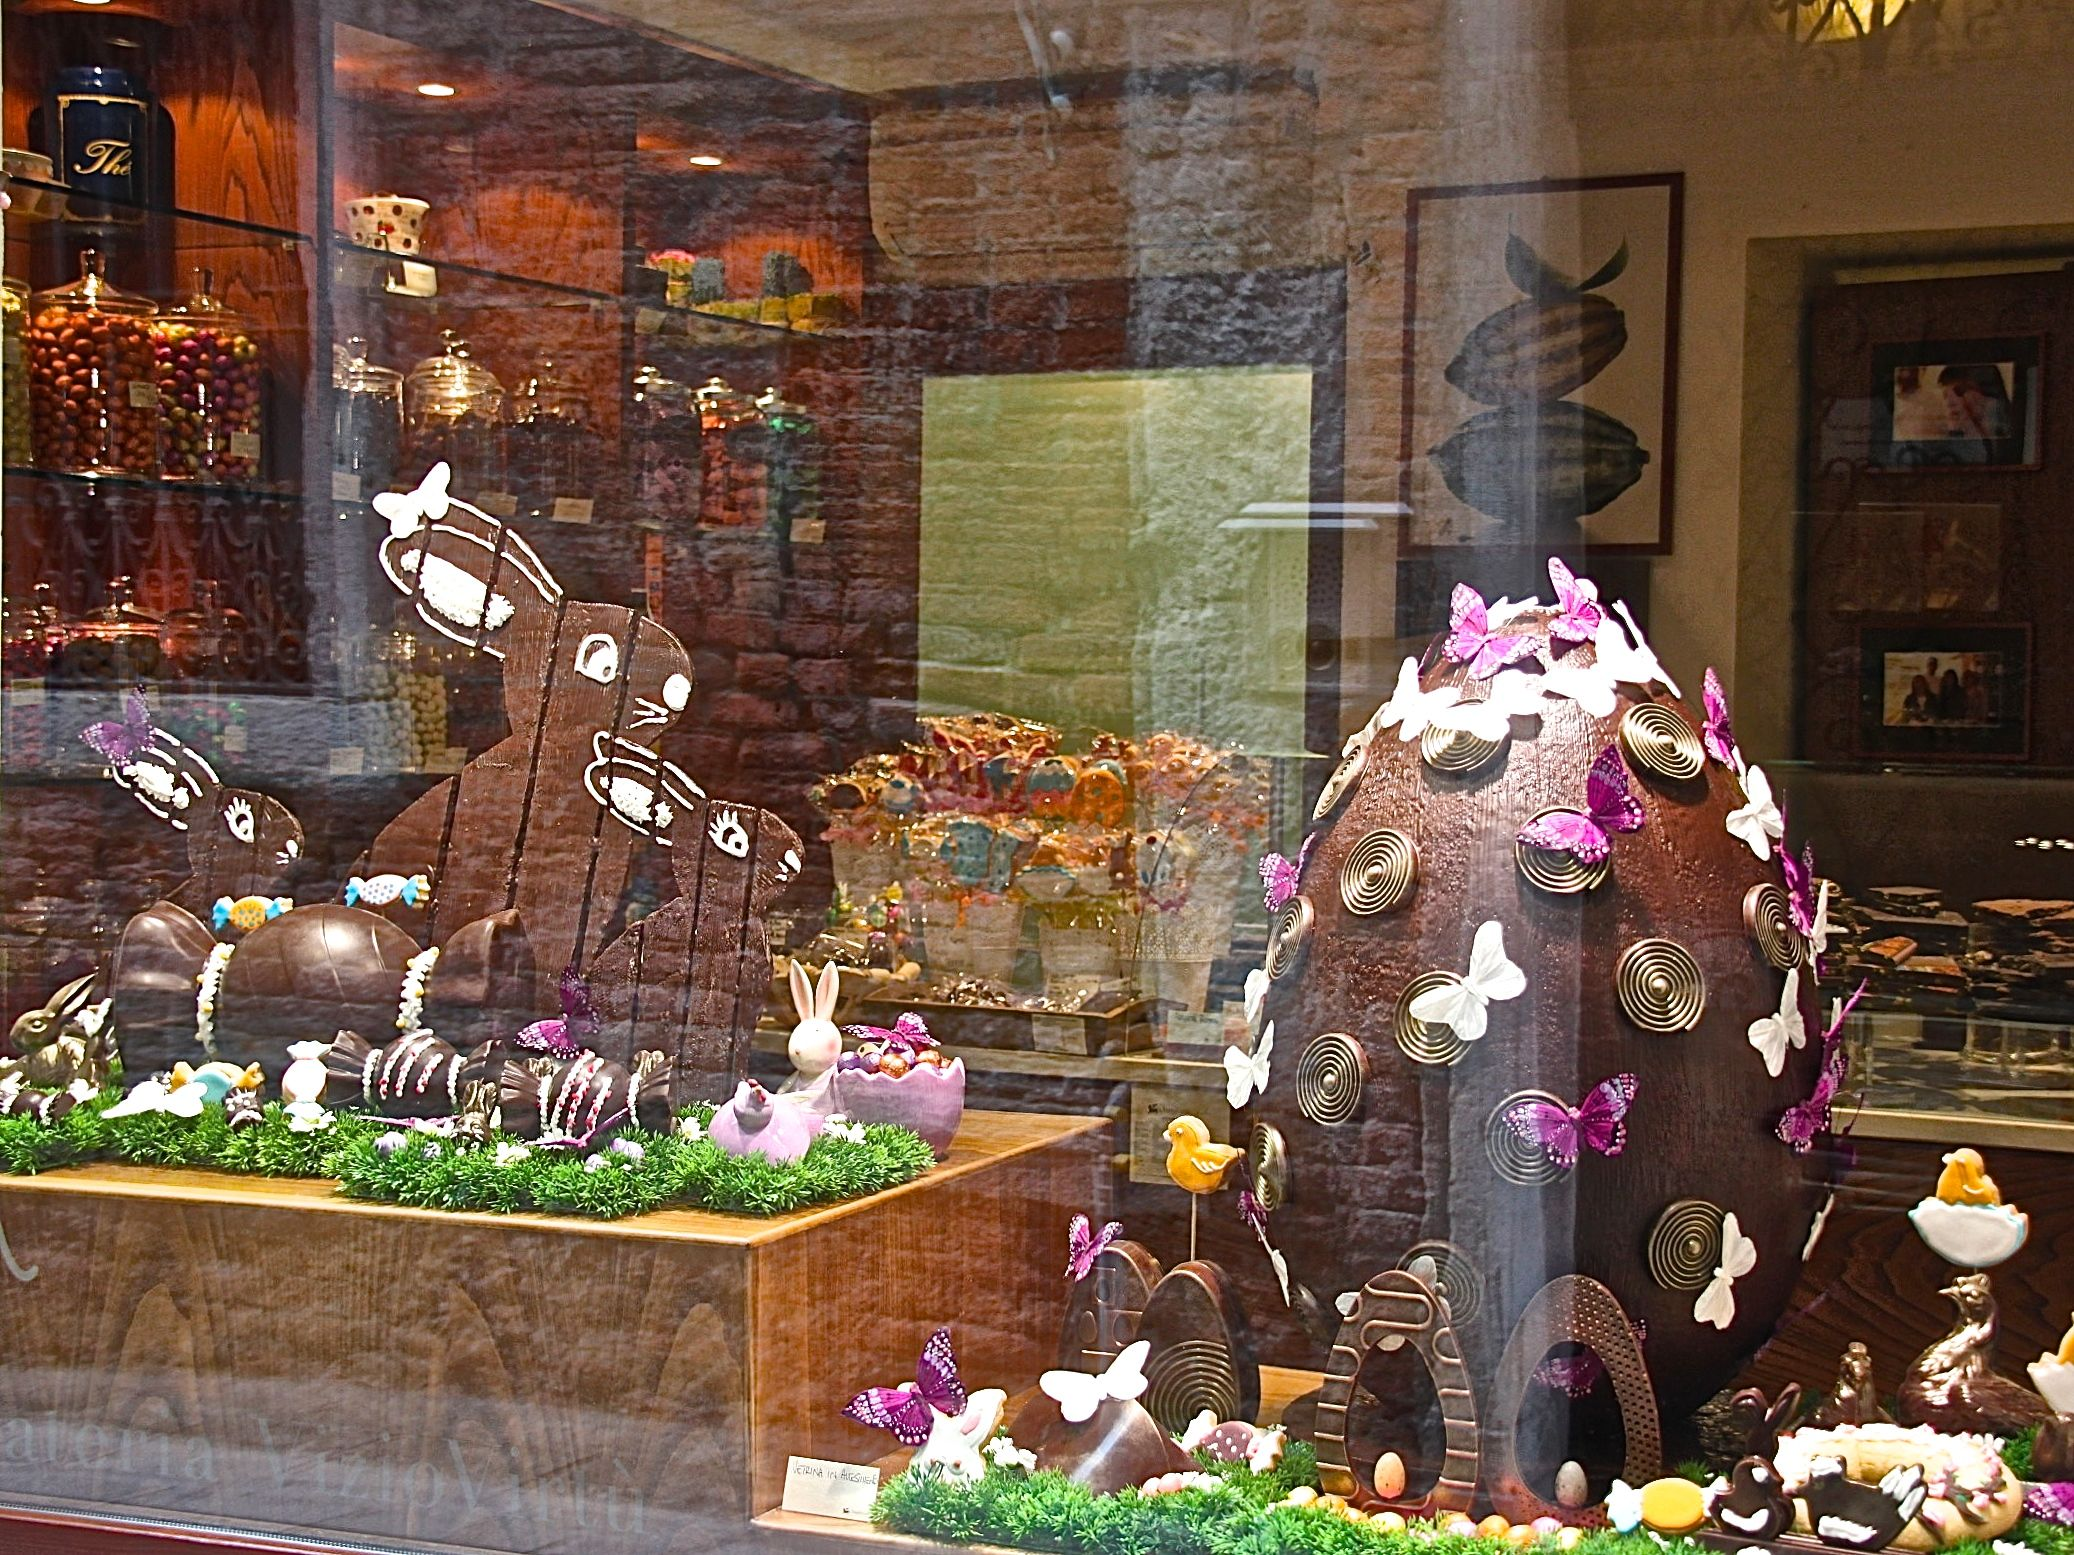 In Italy, Easter is an art as we can see. For the chocolate lovers, these bunnies and the huge egg laid out in the window display, must be a dream.